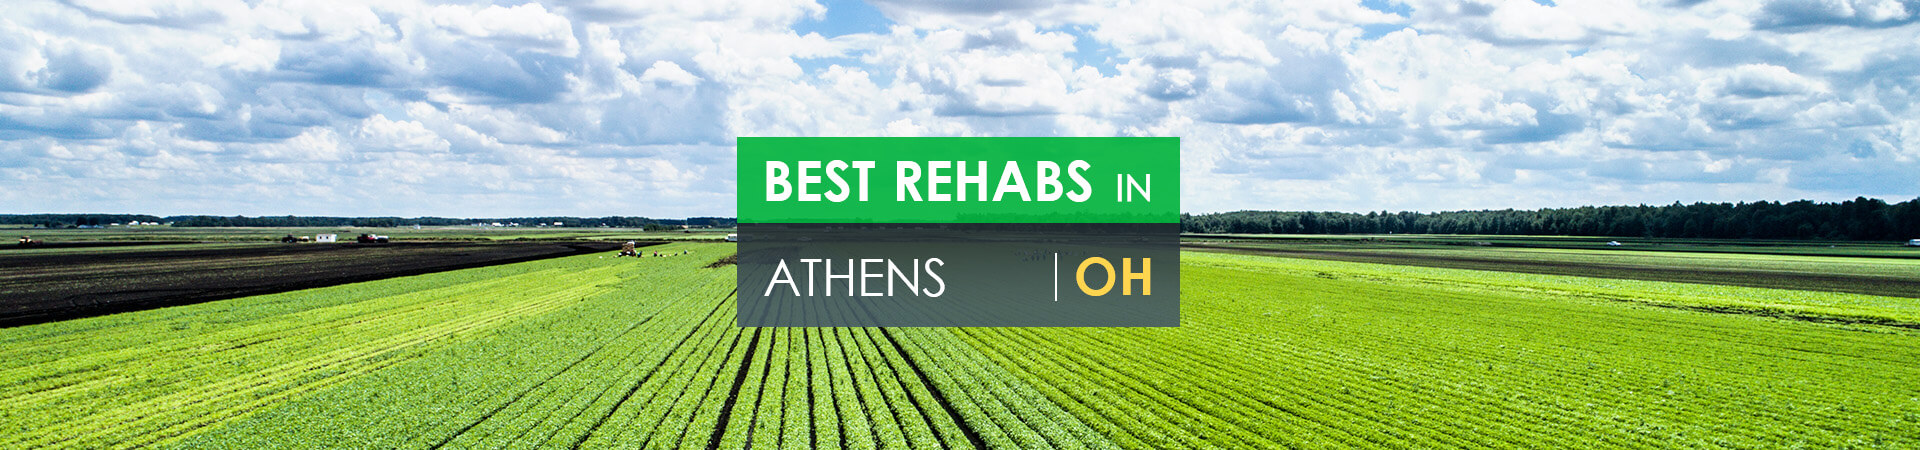 Best rehabs in Athens, OH